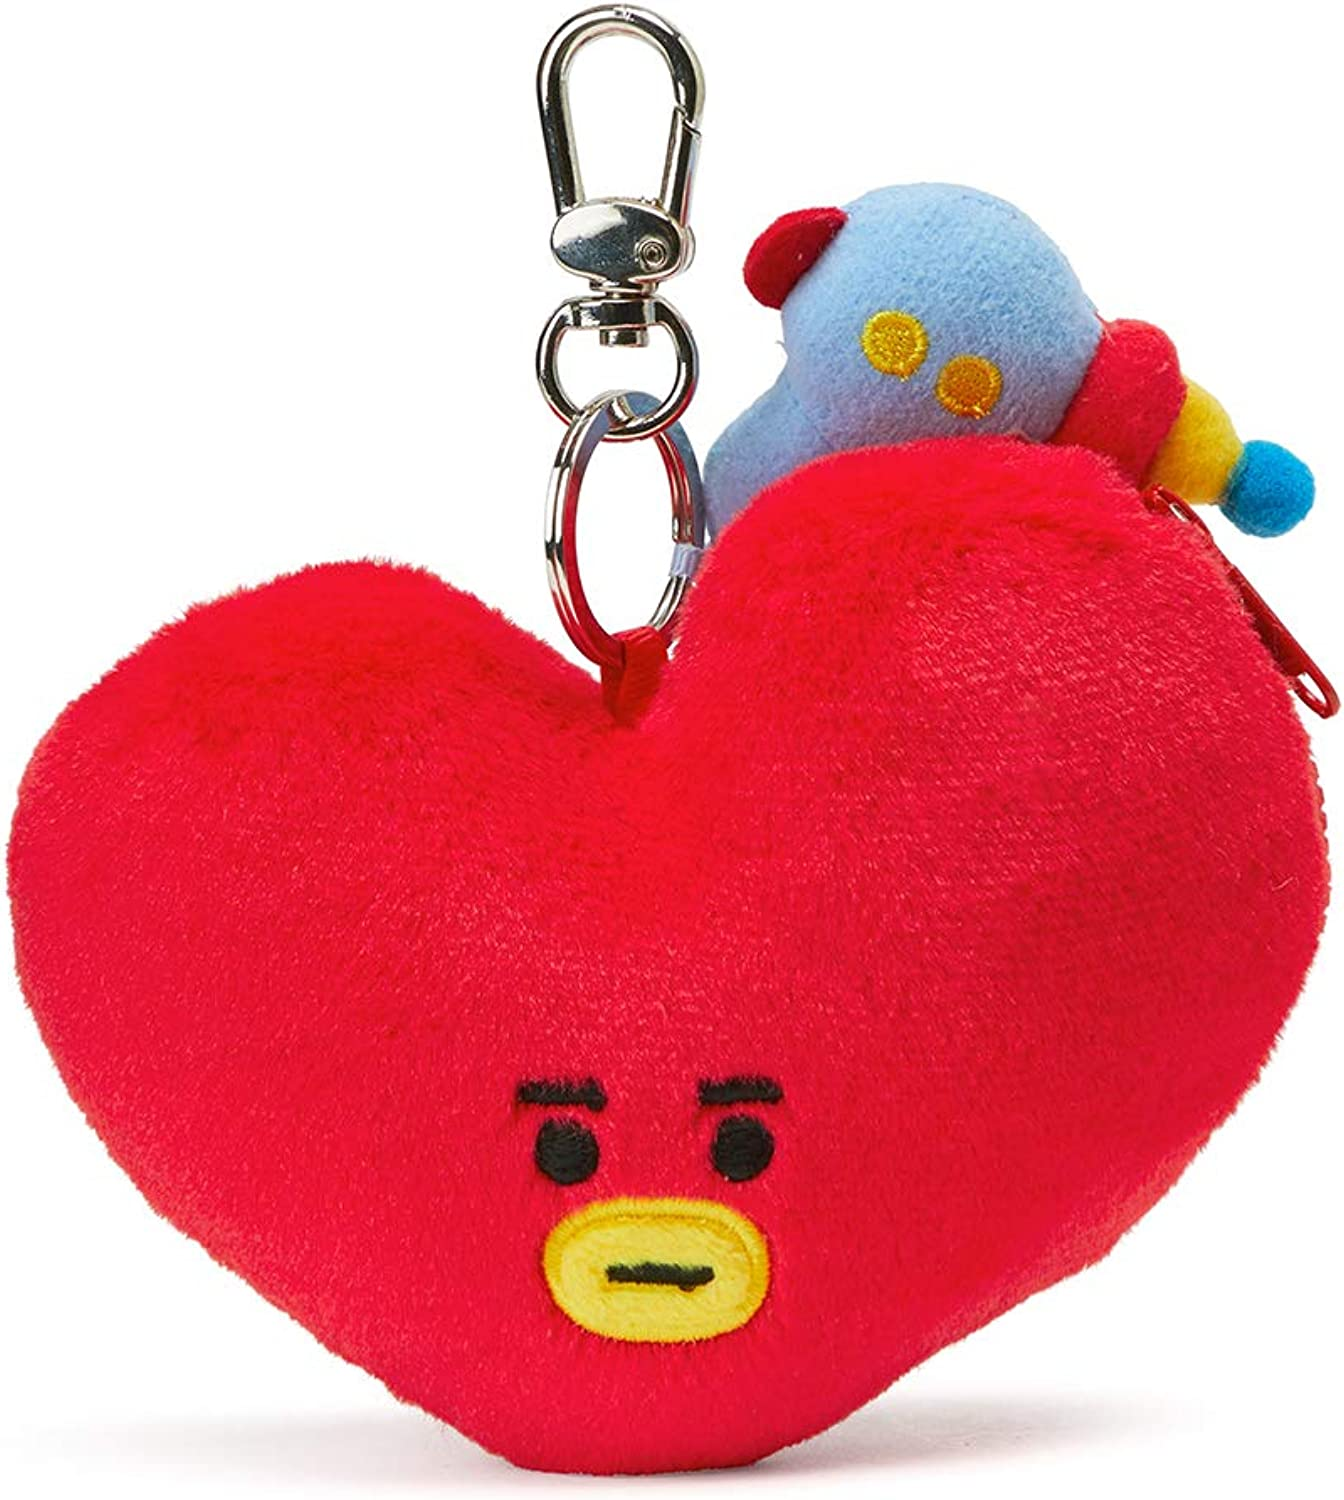 BT21 Official Merchandise by Line Friends  Character Keychain Coin Purse Bag Charm